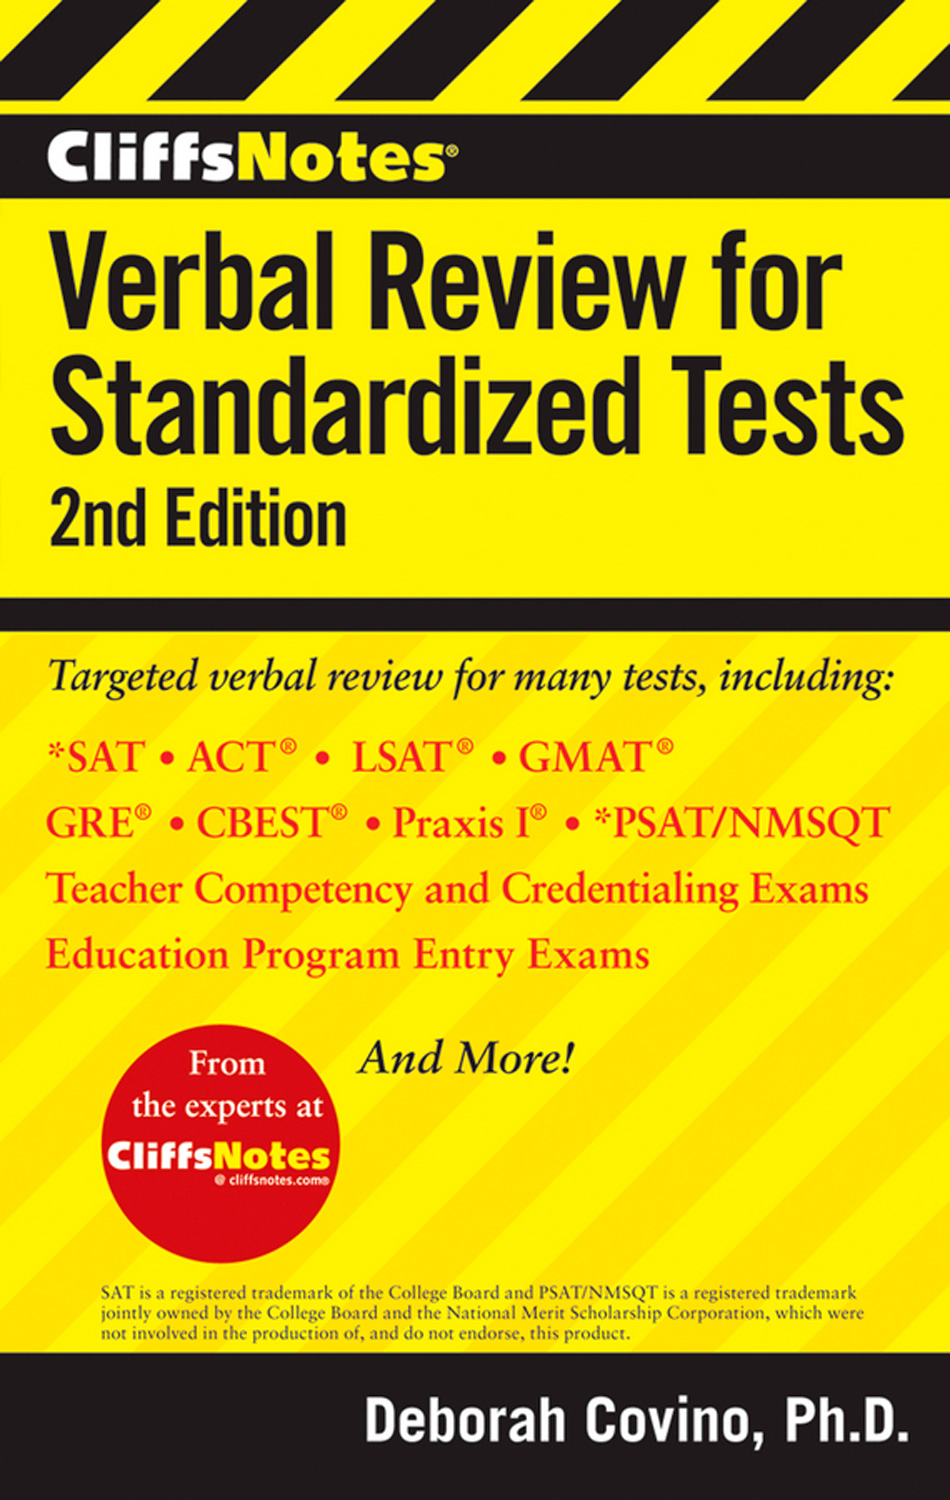 CliffsNotes Verbal Review for Standardized Tests, 2nd Edition-9781118334256